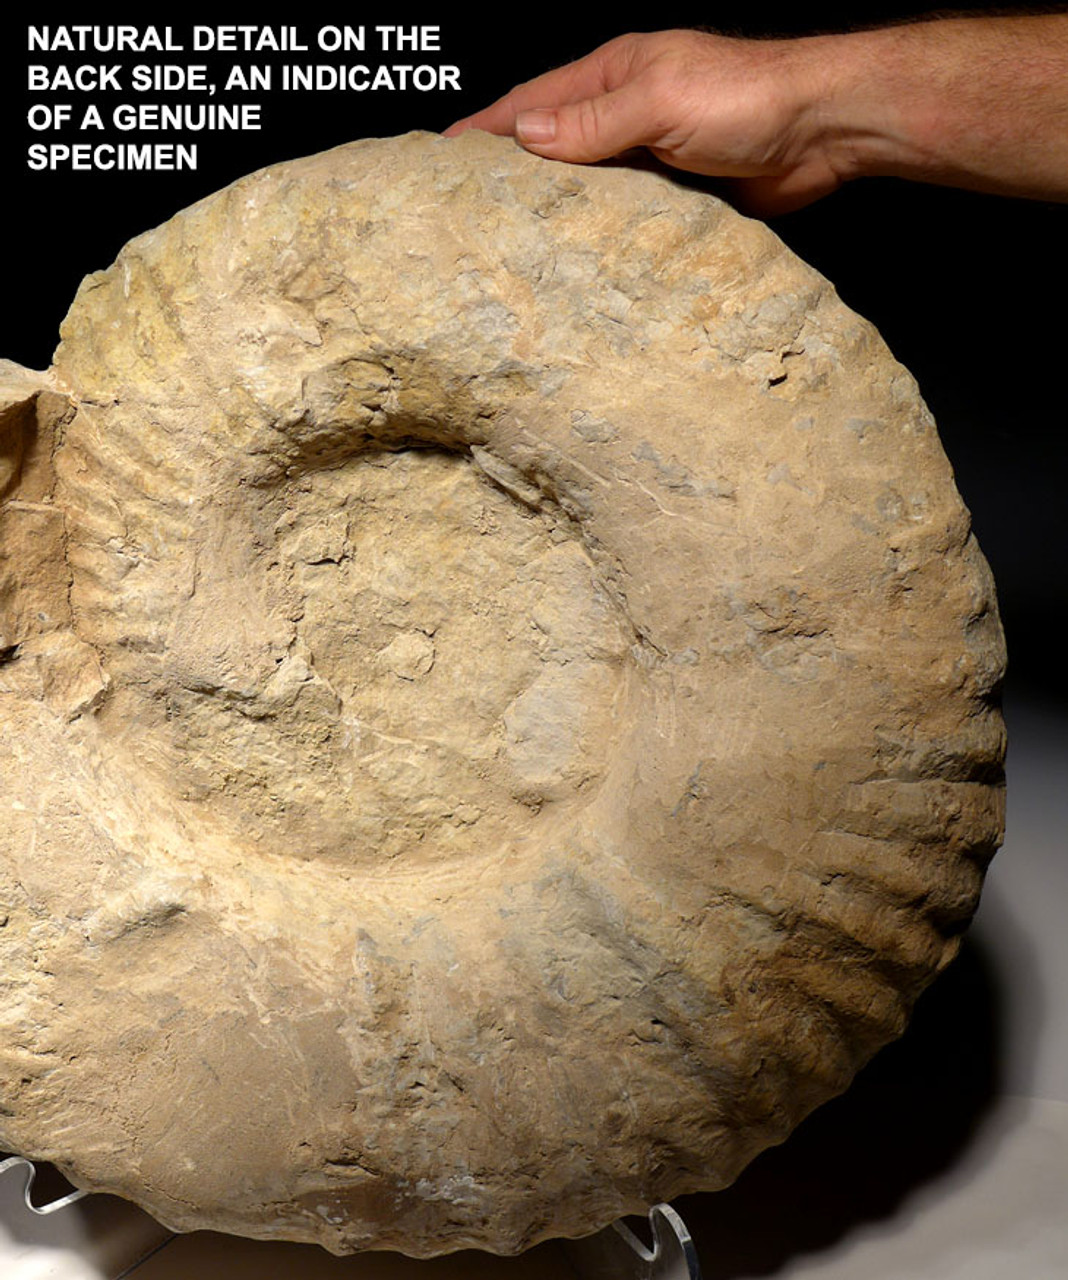 AMX342 - OUR LARGEST EVER 25+ INCH MONSTROUS CRETACEOUS AMMONITE OCEAN FOSSIL